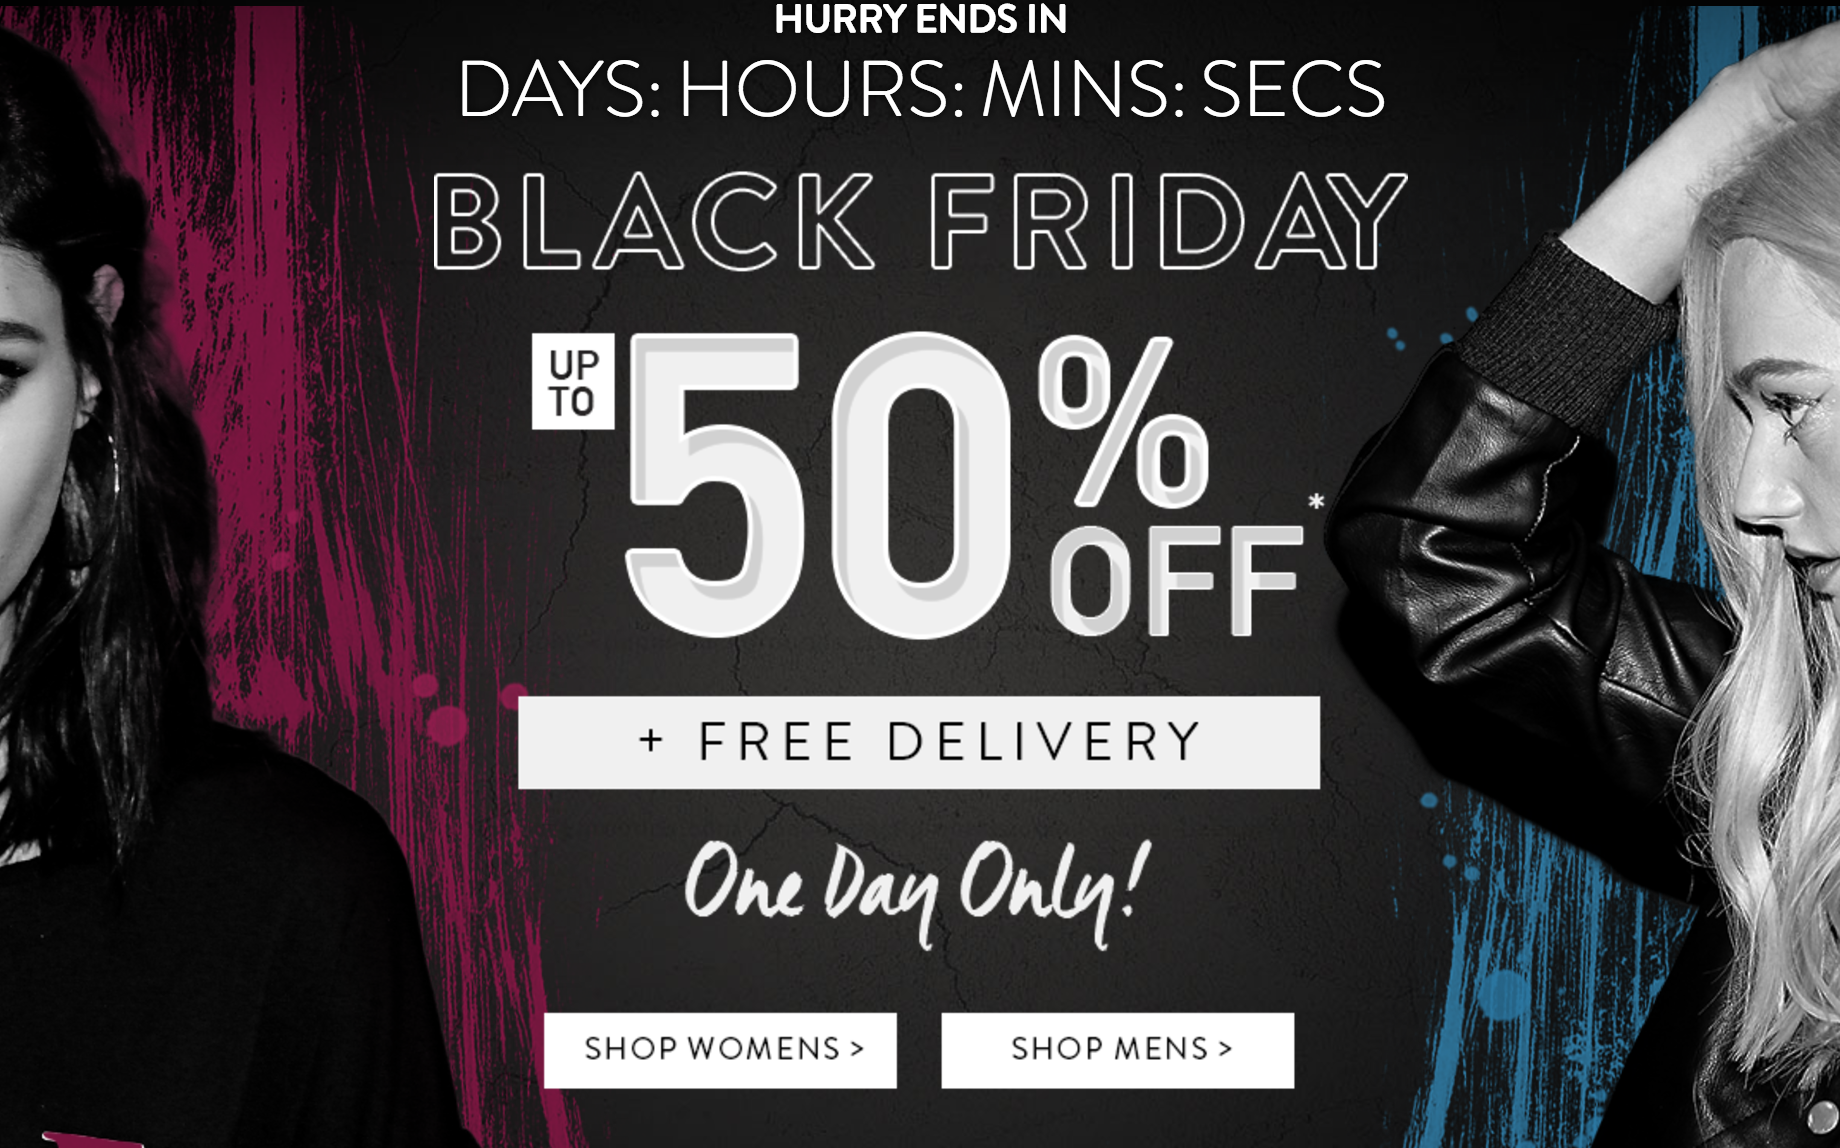 Boohoo is offering not only 50% off EVERYTHING as they are also giving free delivery. Feels like an invitation to steal!